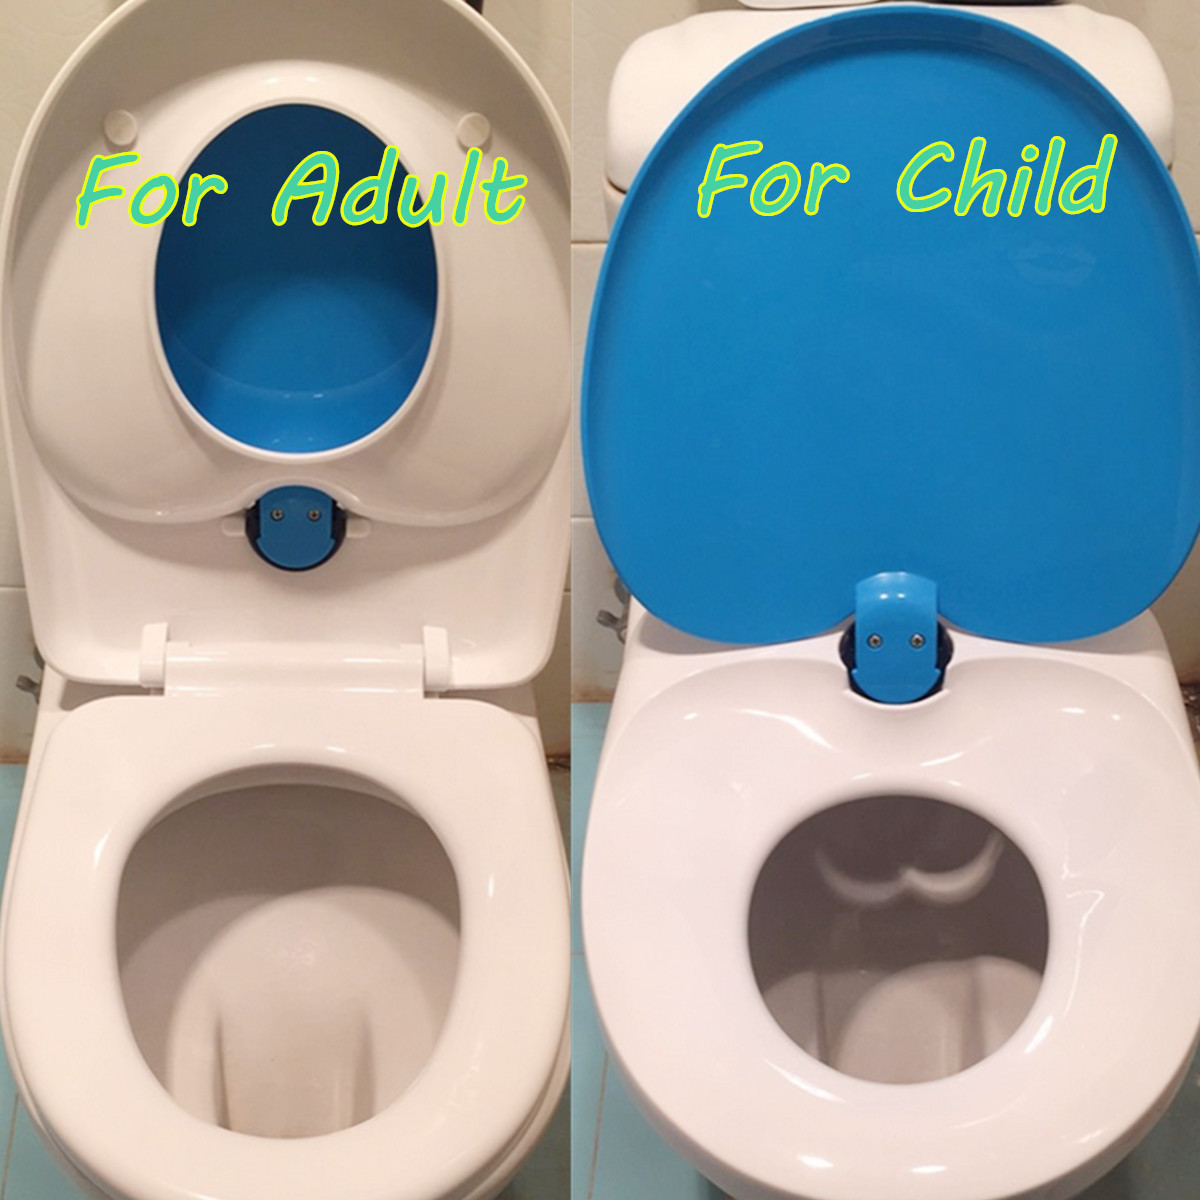 Family Toilet Seat 2 In 1 For Kids Child Toddler Adult